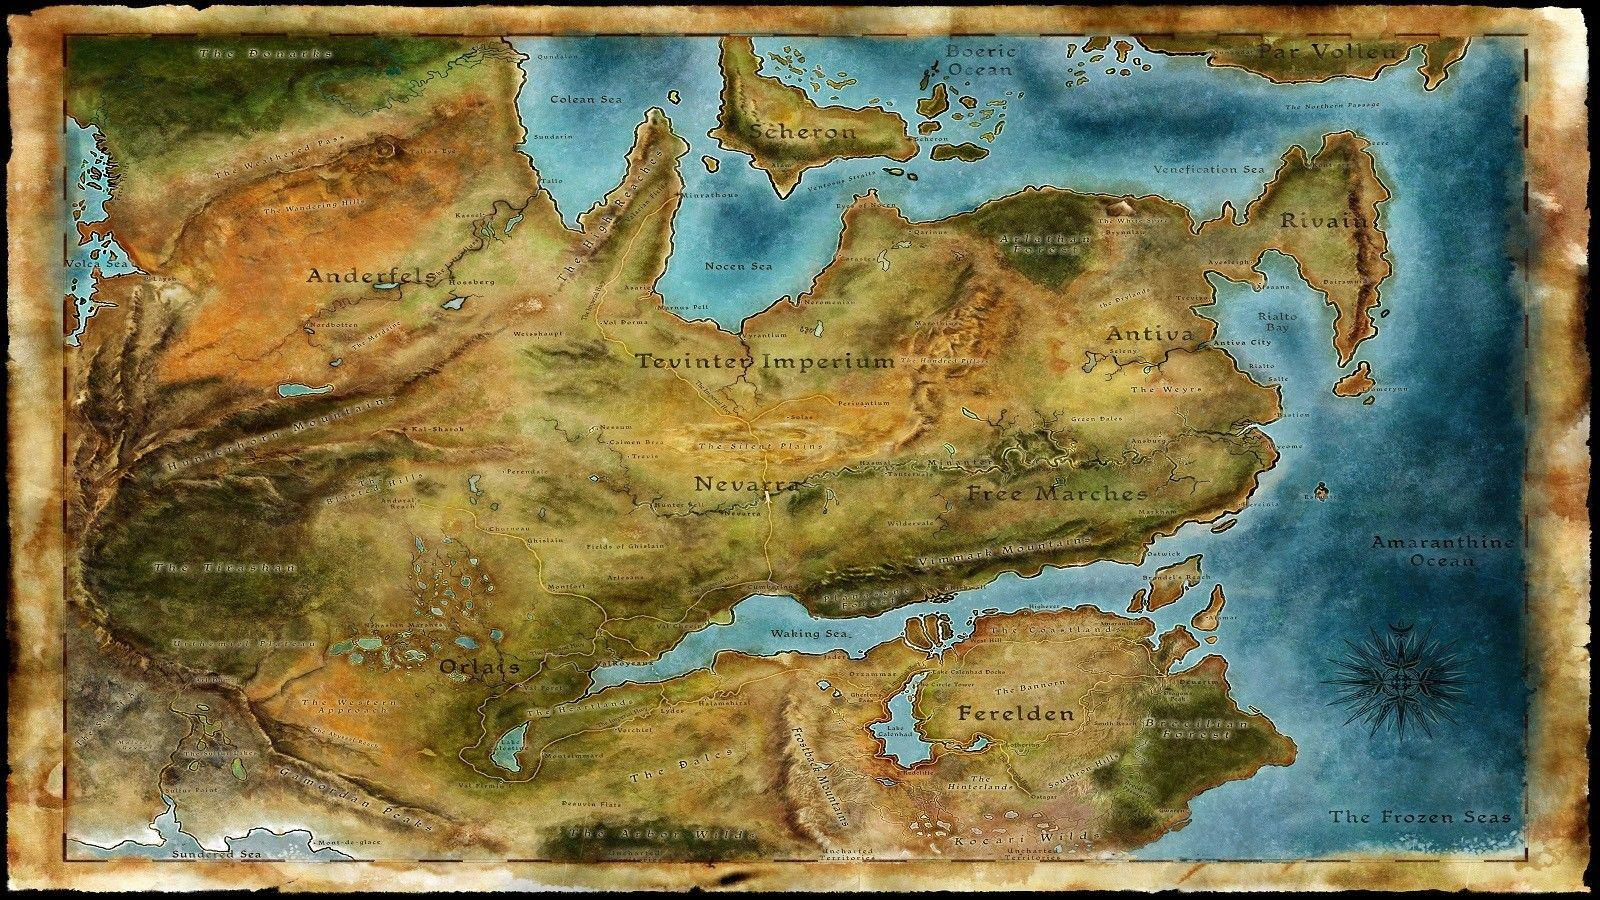 2019 Thedas Map Dragon Age Games Art Silk Print Poster 24x36inch60x90cm 018  From Chuy8988, $10.93 | DHgate.Com